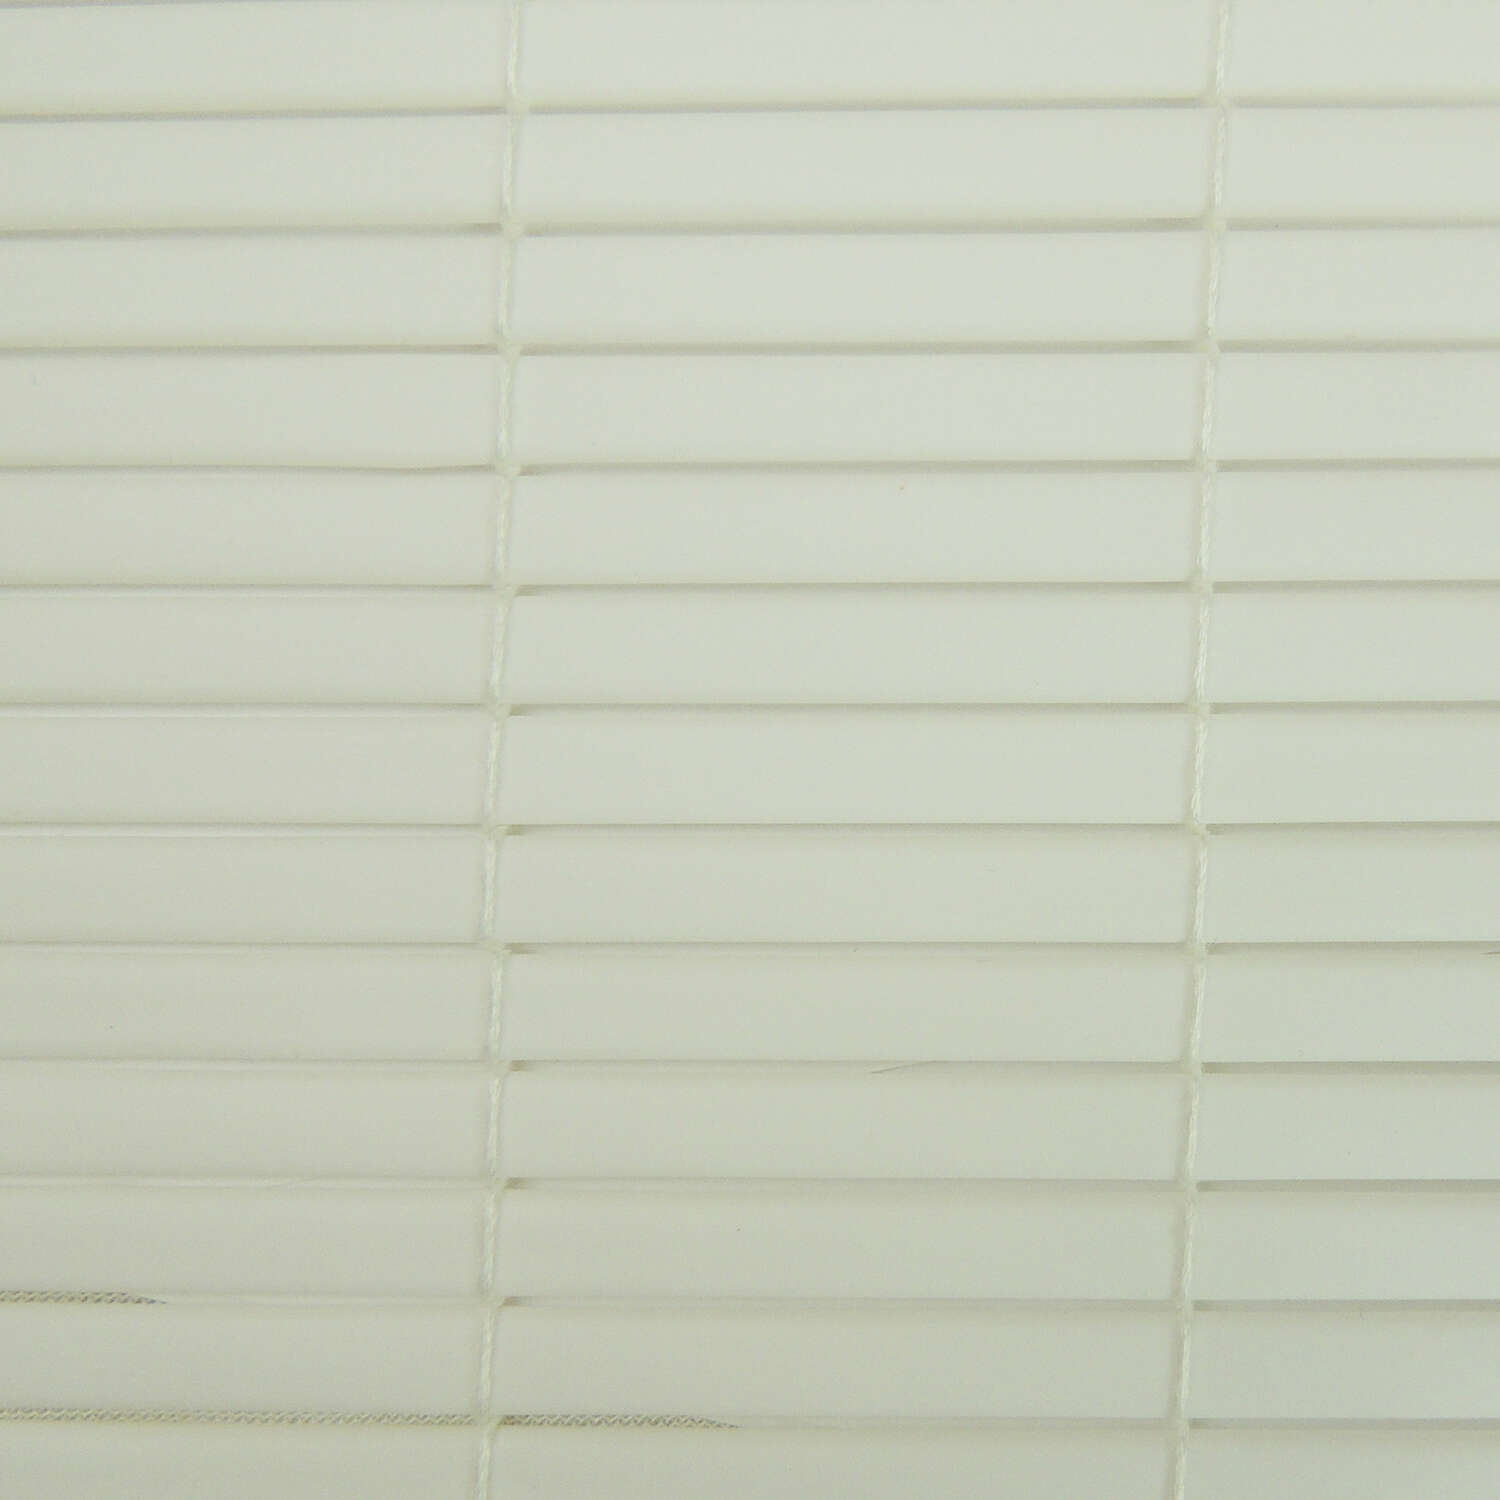 Radiance  Vinyl  Rollup Shade  120 in. W x 72 in. H White  Cordless